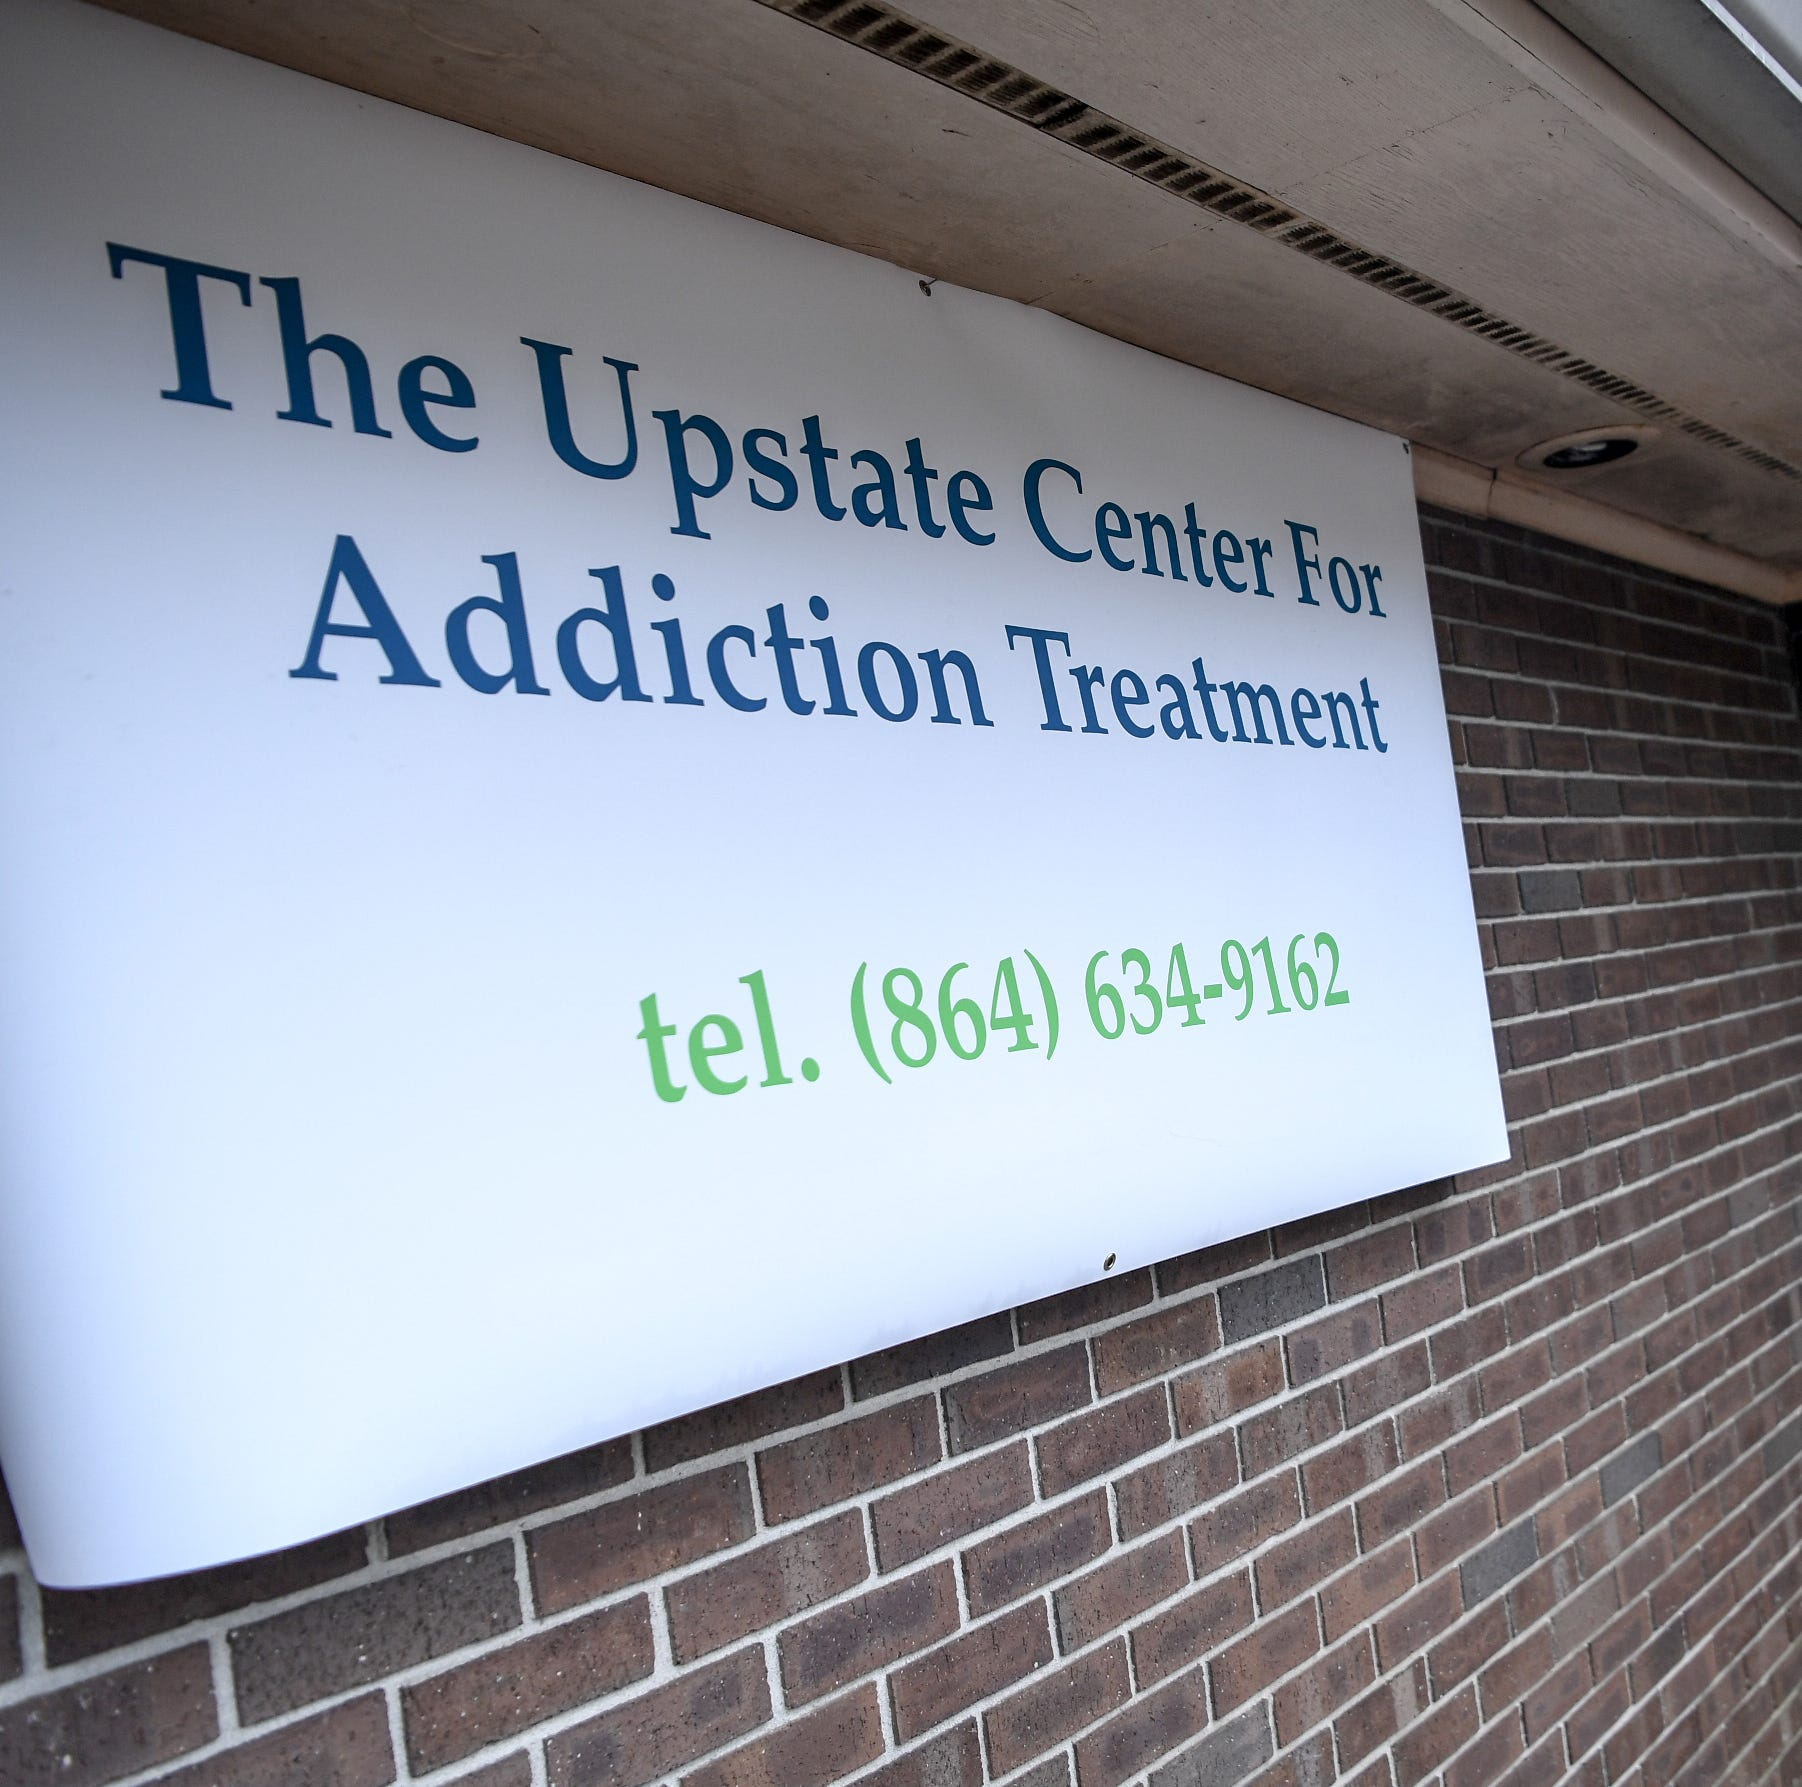 Anderson County won't allow drug treatment centers near churches, schools or playgrounds